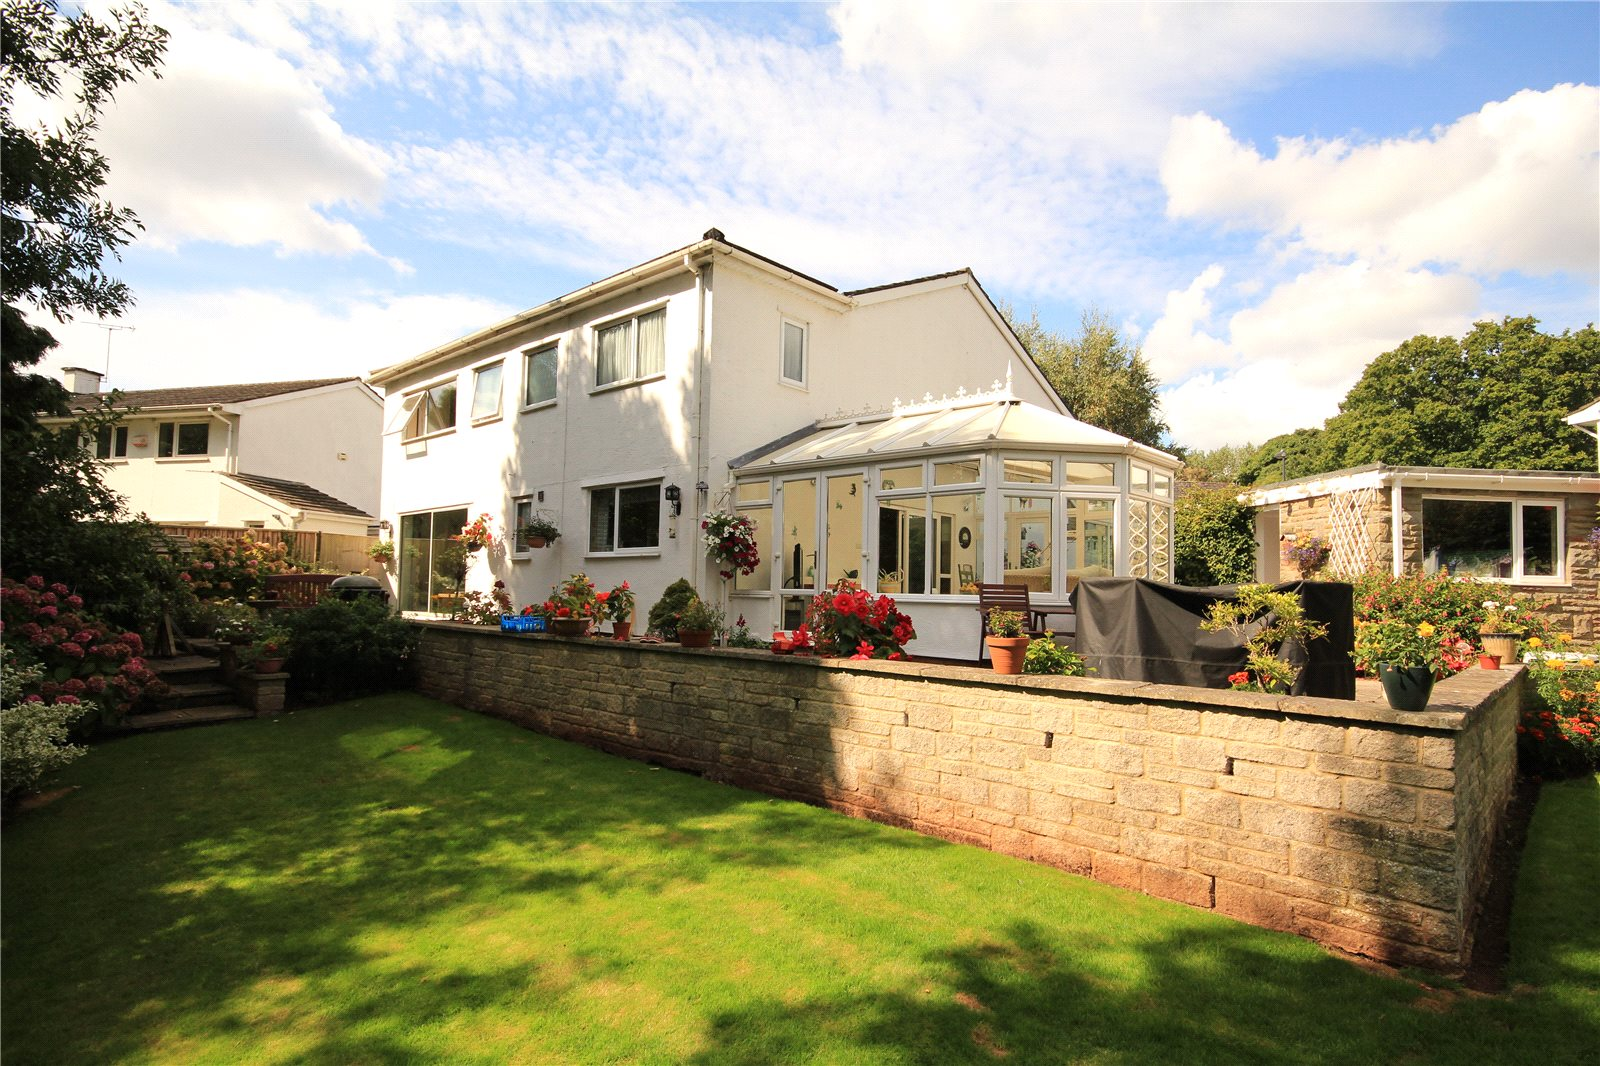 4 Bedrooms Detached House for sale in The Newlands Frenchay Bristol BS16